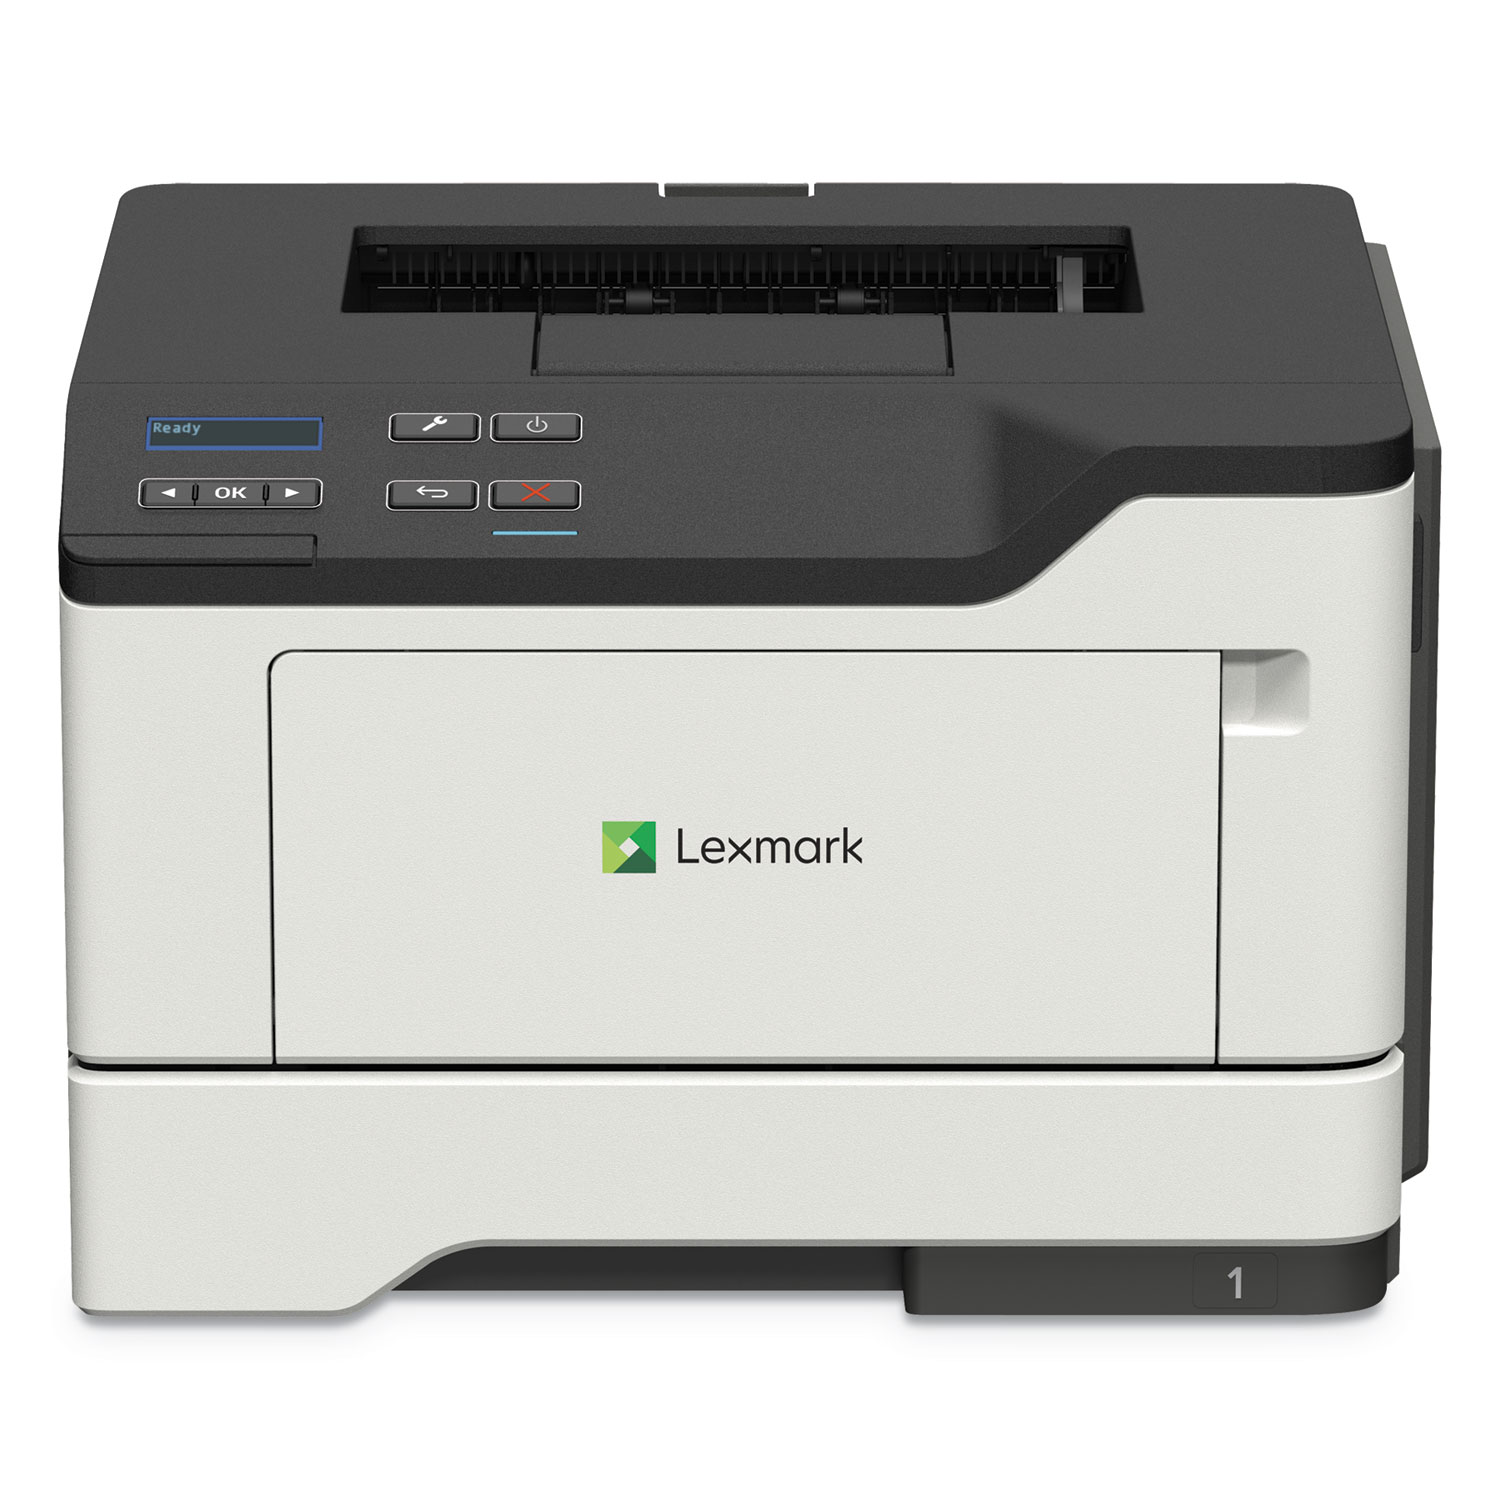 B2442dw Wireless Laser Printer